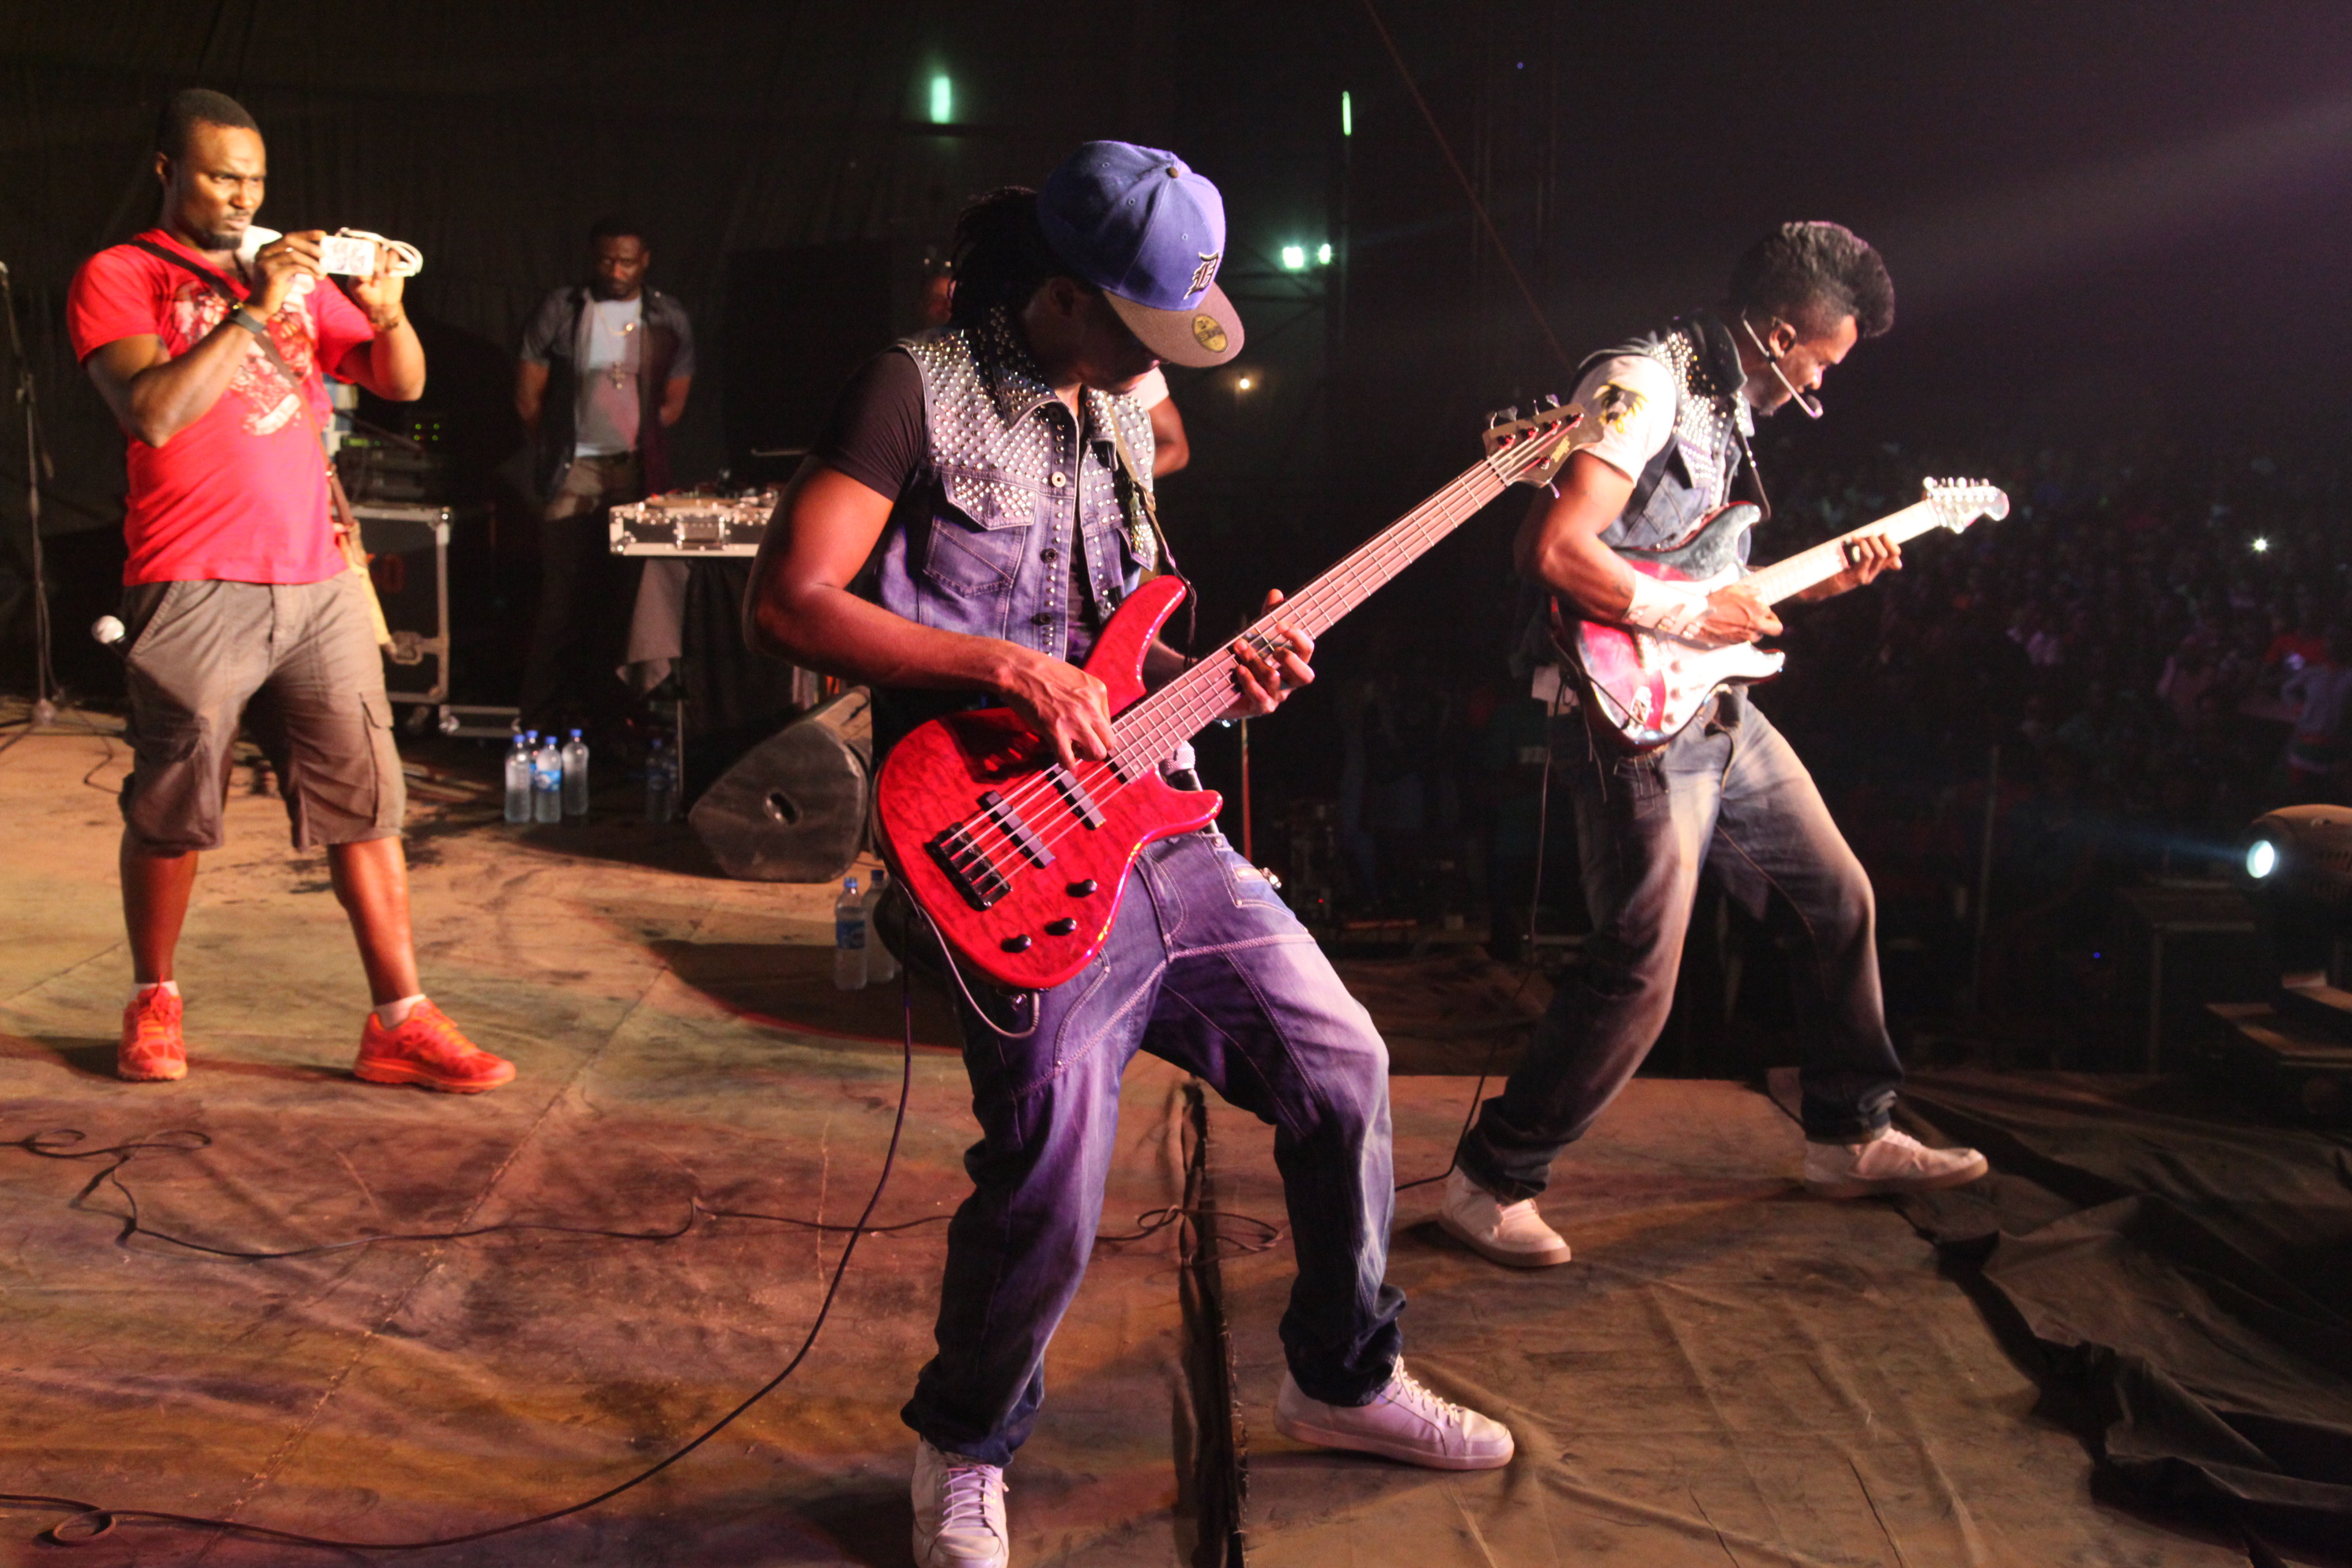 Psquare entertaining crowd with guitar